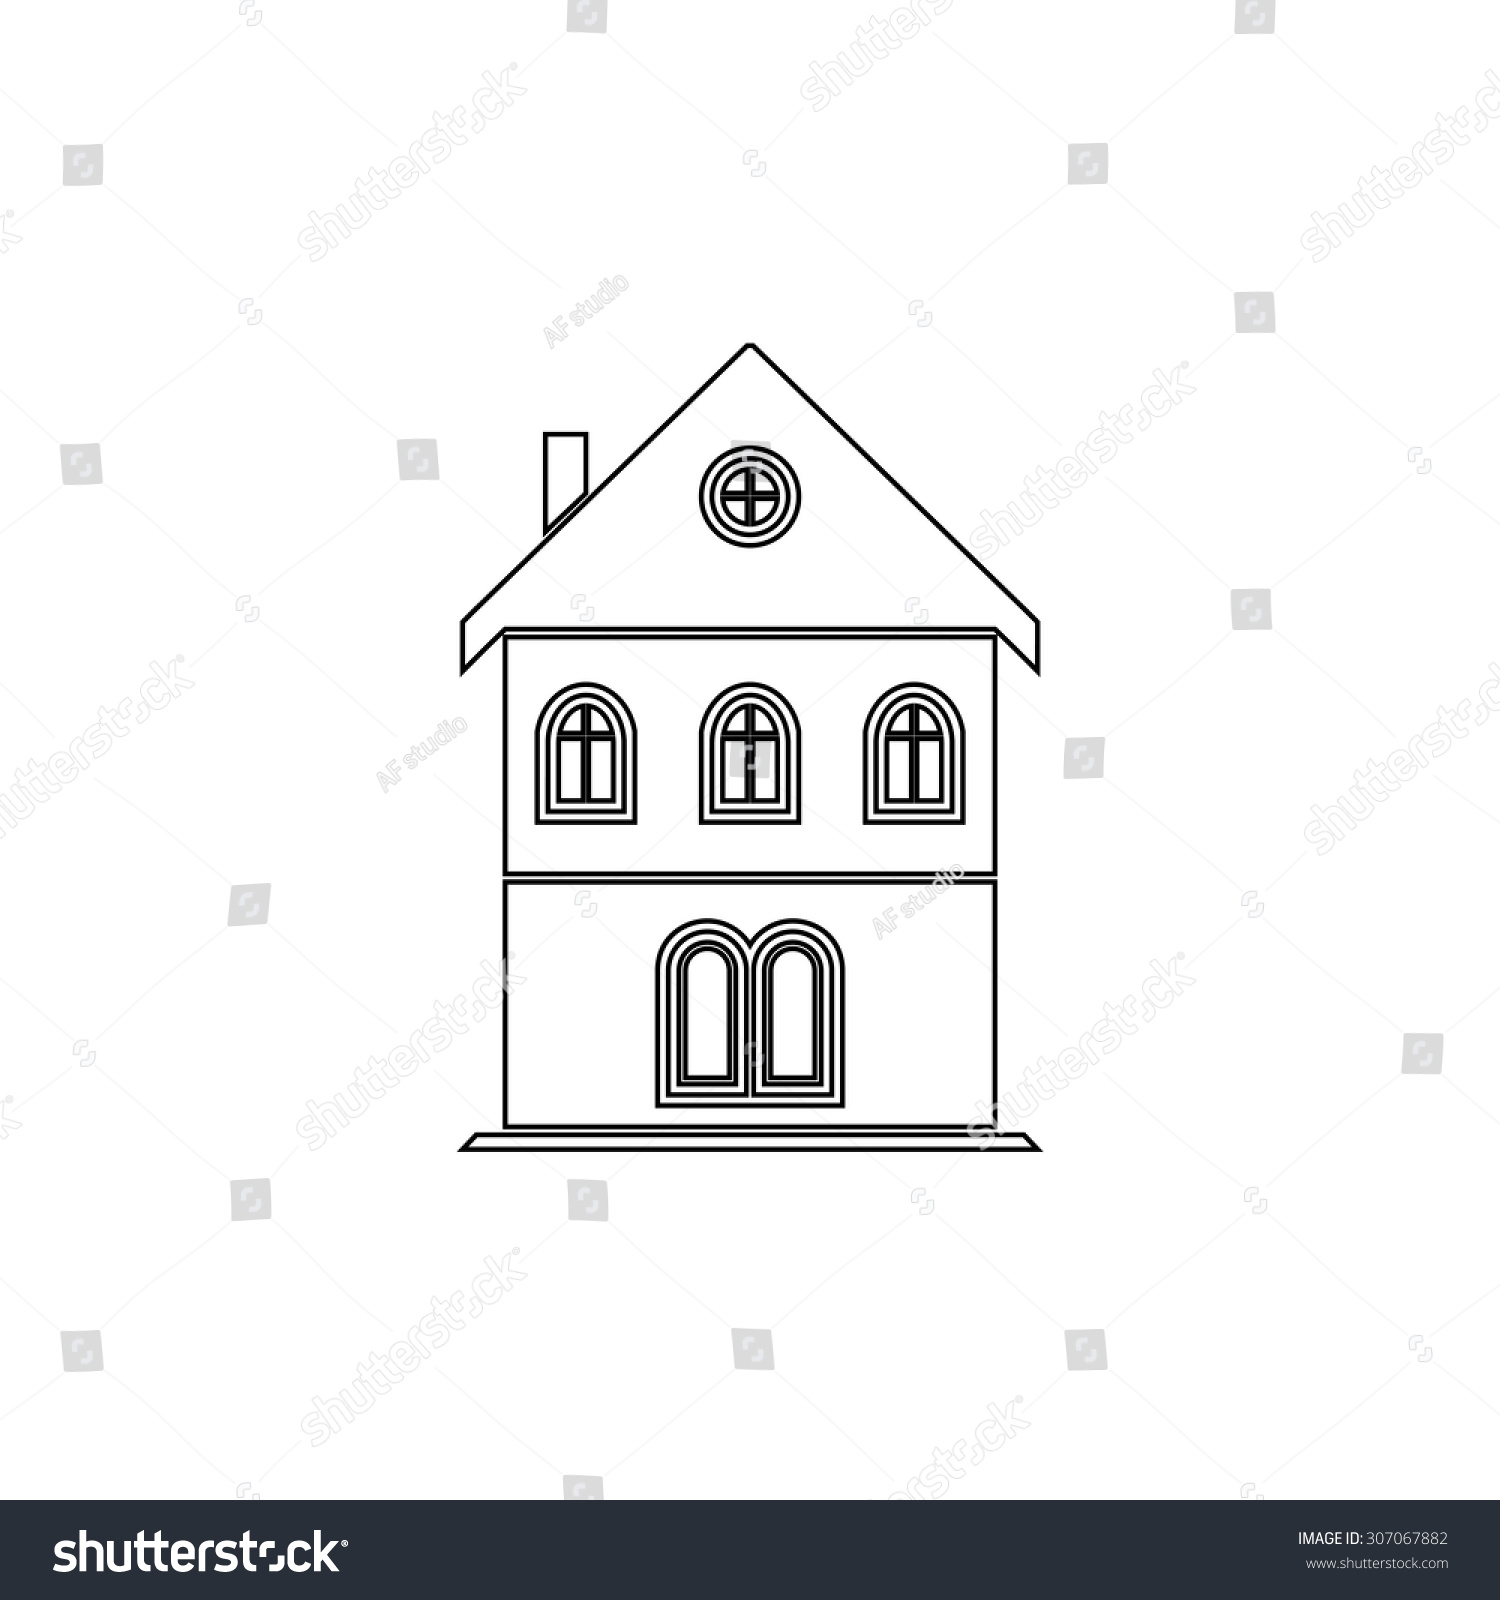 House outline picture - Save To A Lightbox